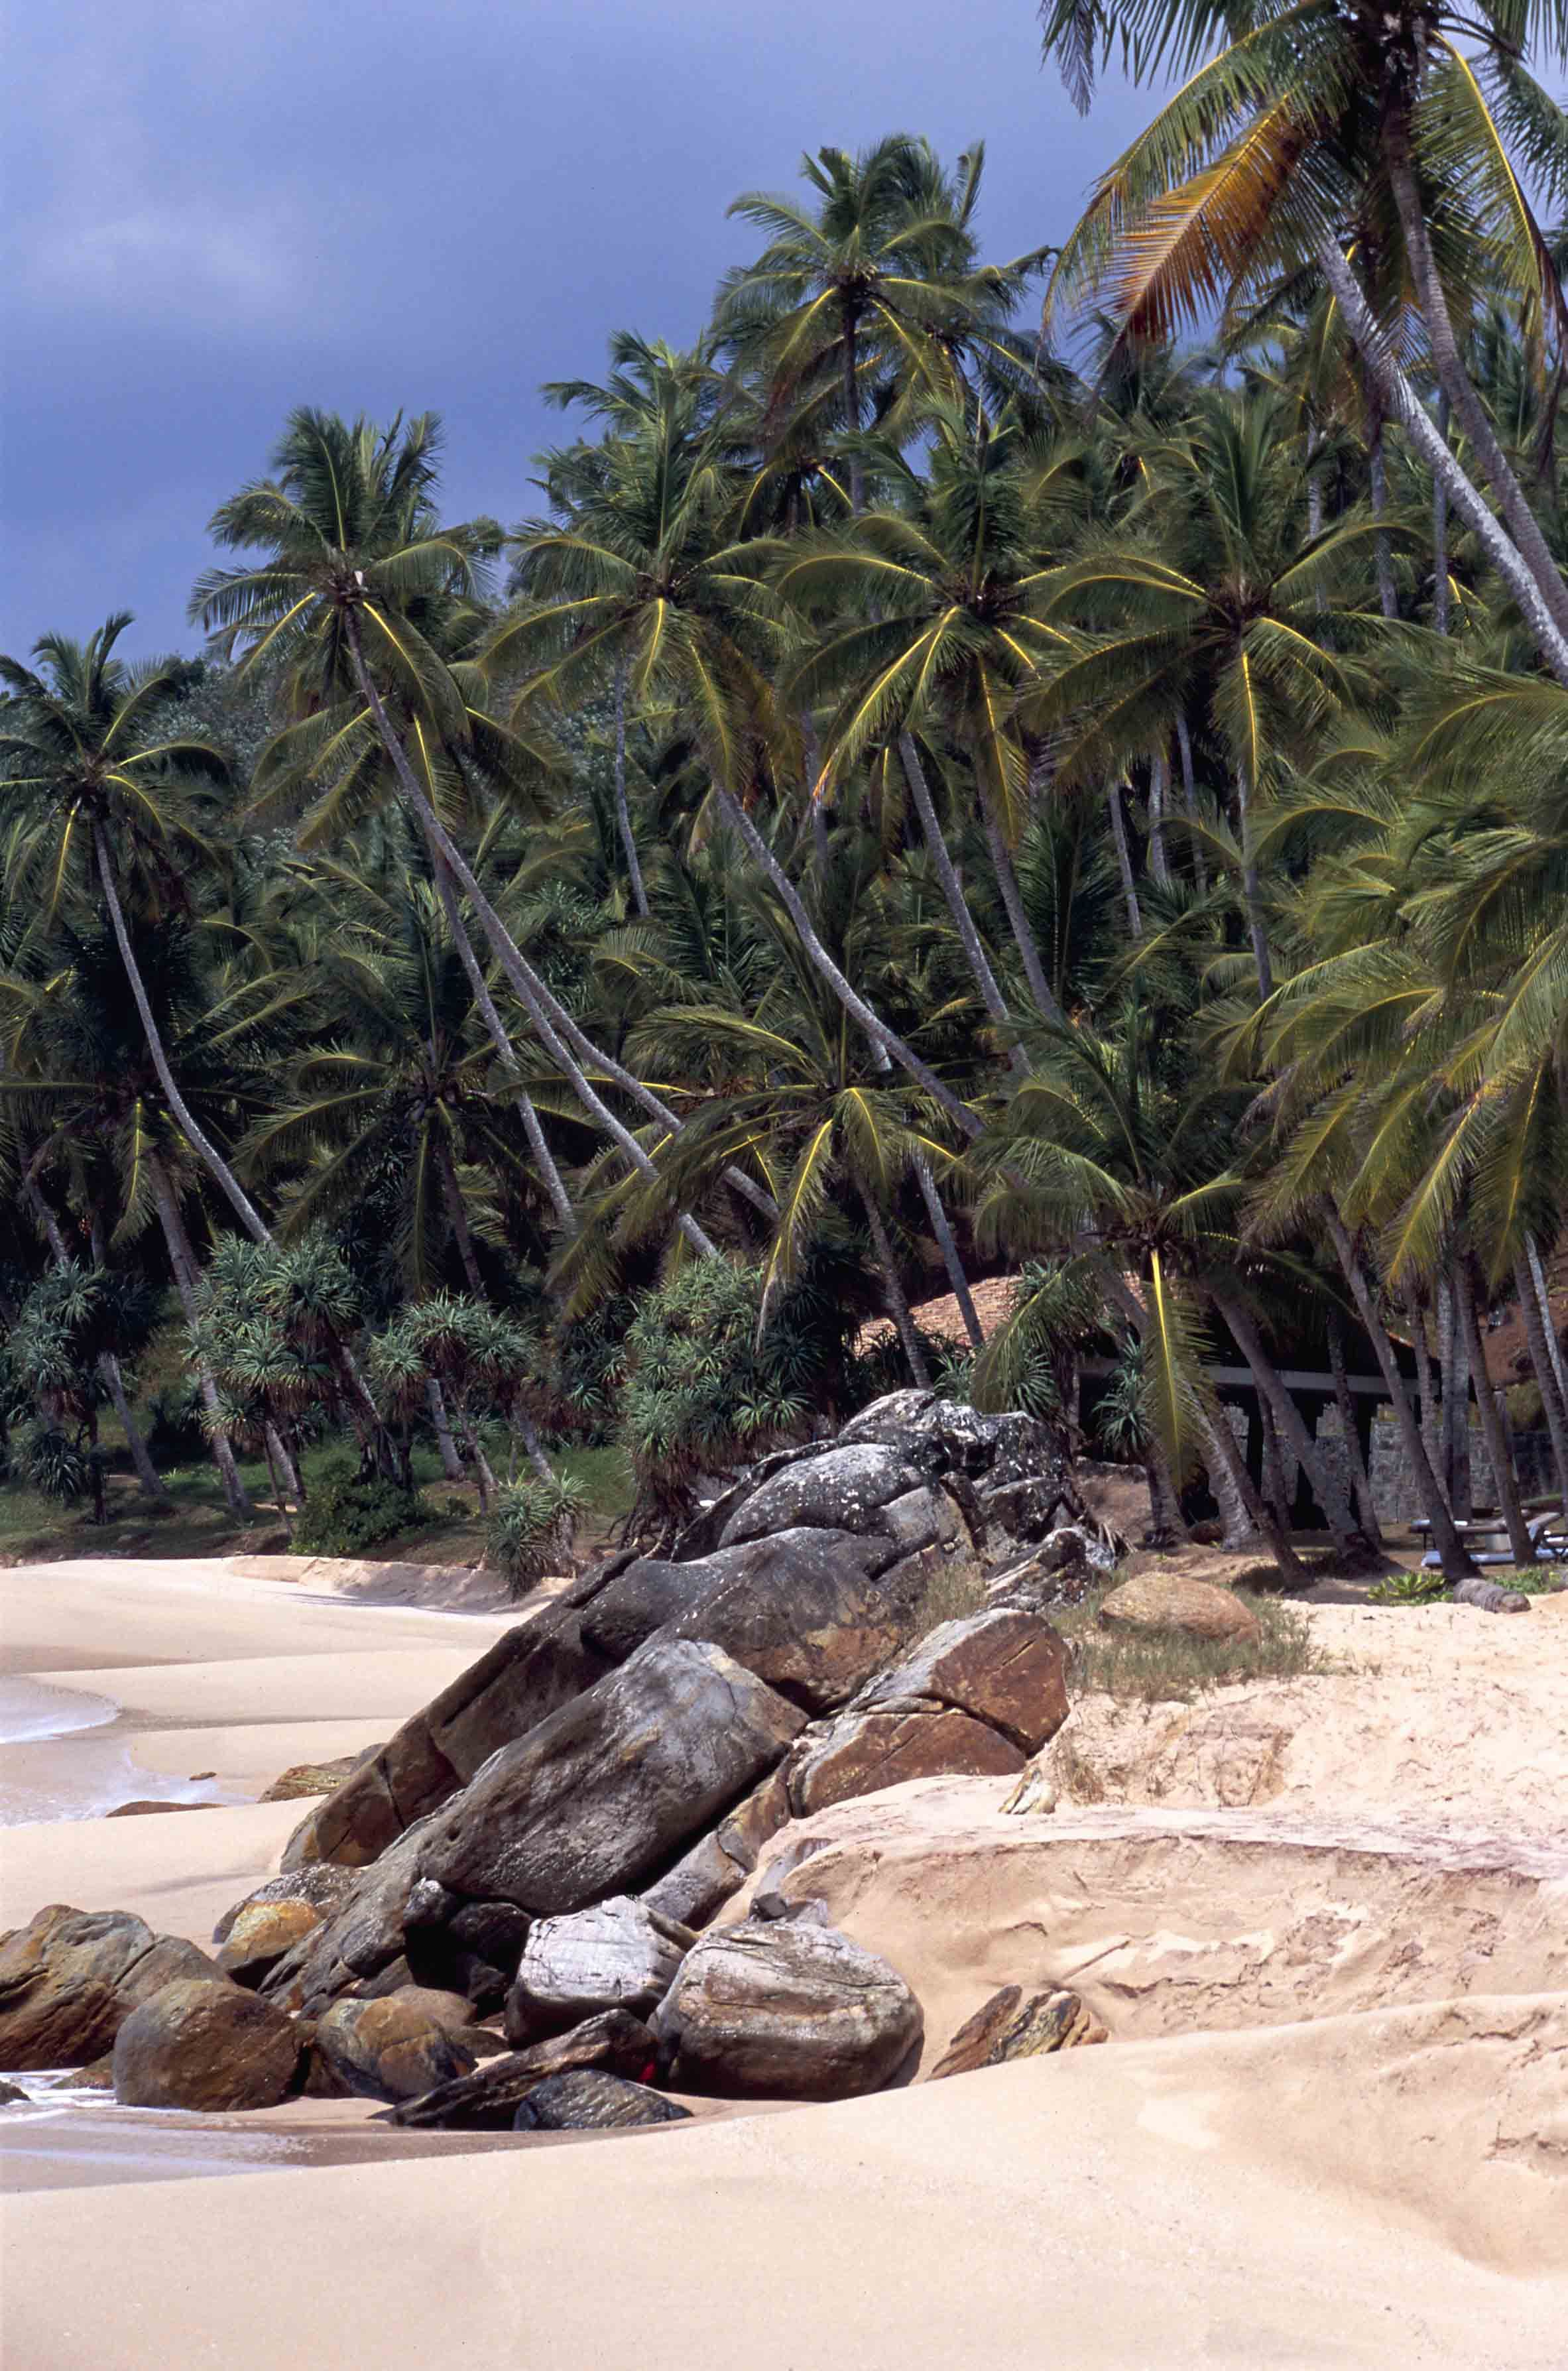 Six hours south of Colombo, Sri Lanka's most beautiful beach is the private reserve of Aman guests and the odd fishing boat.